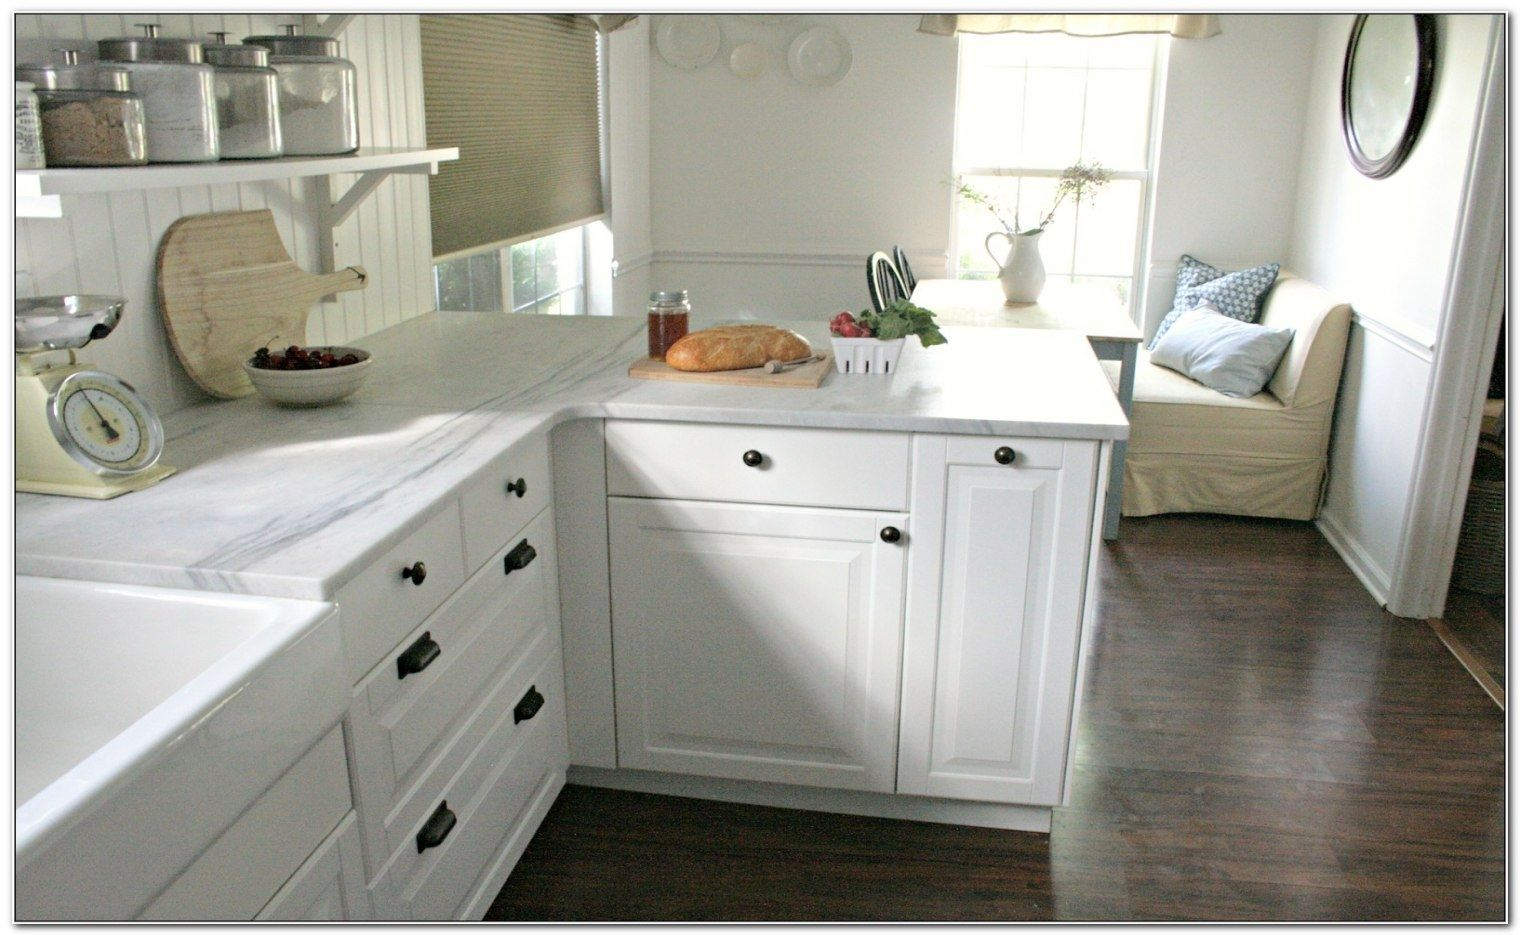 Kohler Short Apron Farmhouse Sink Sinks And Faucets Home